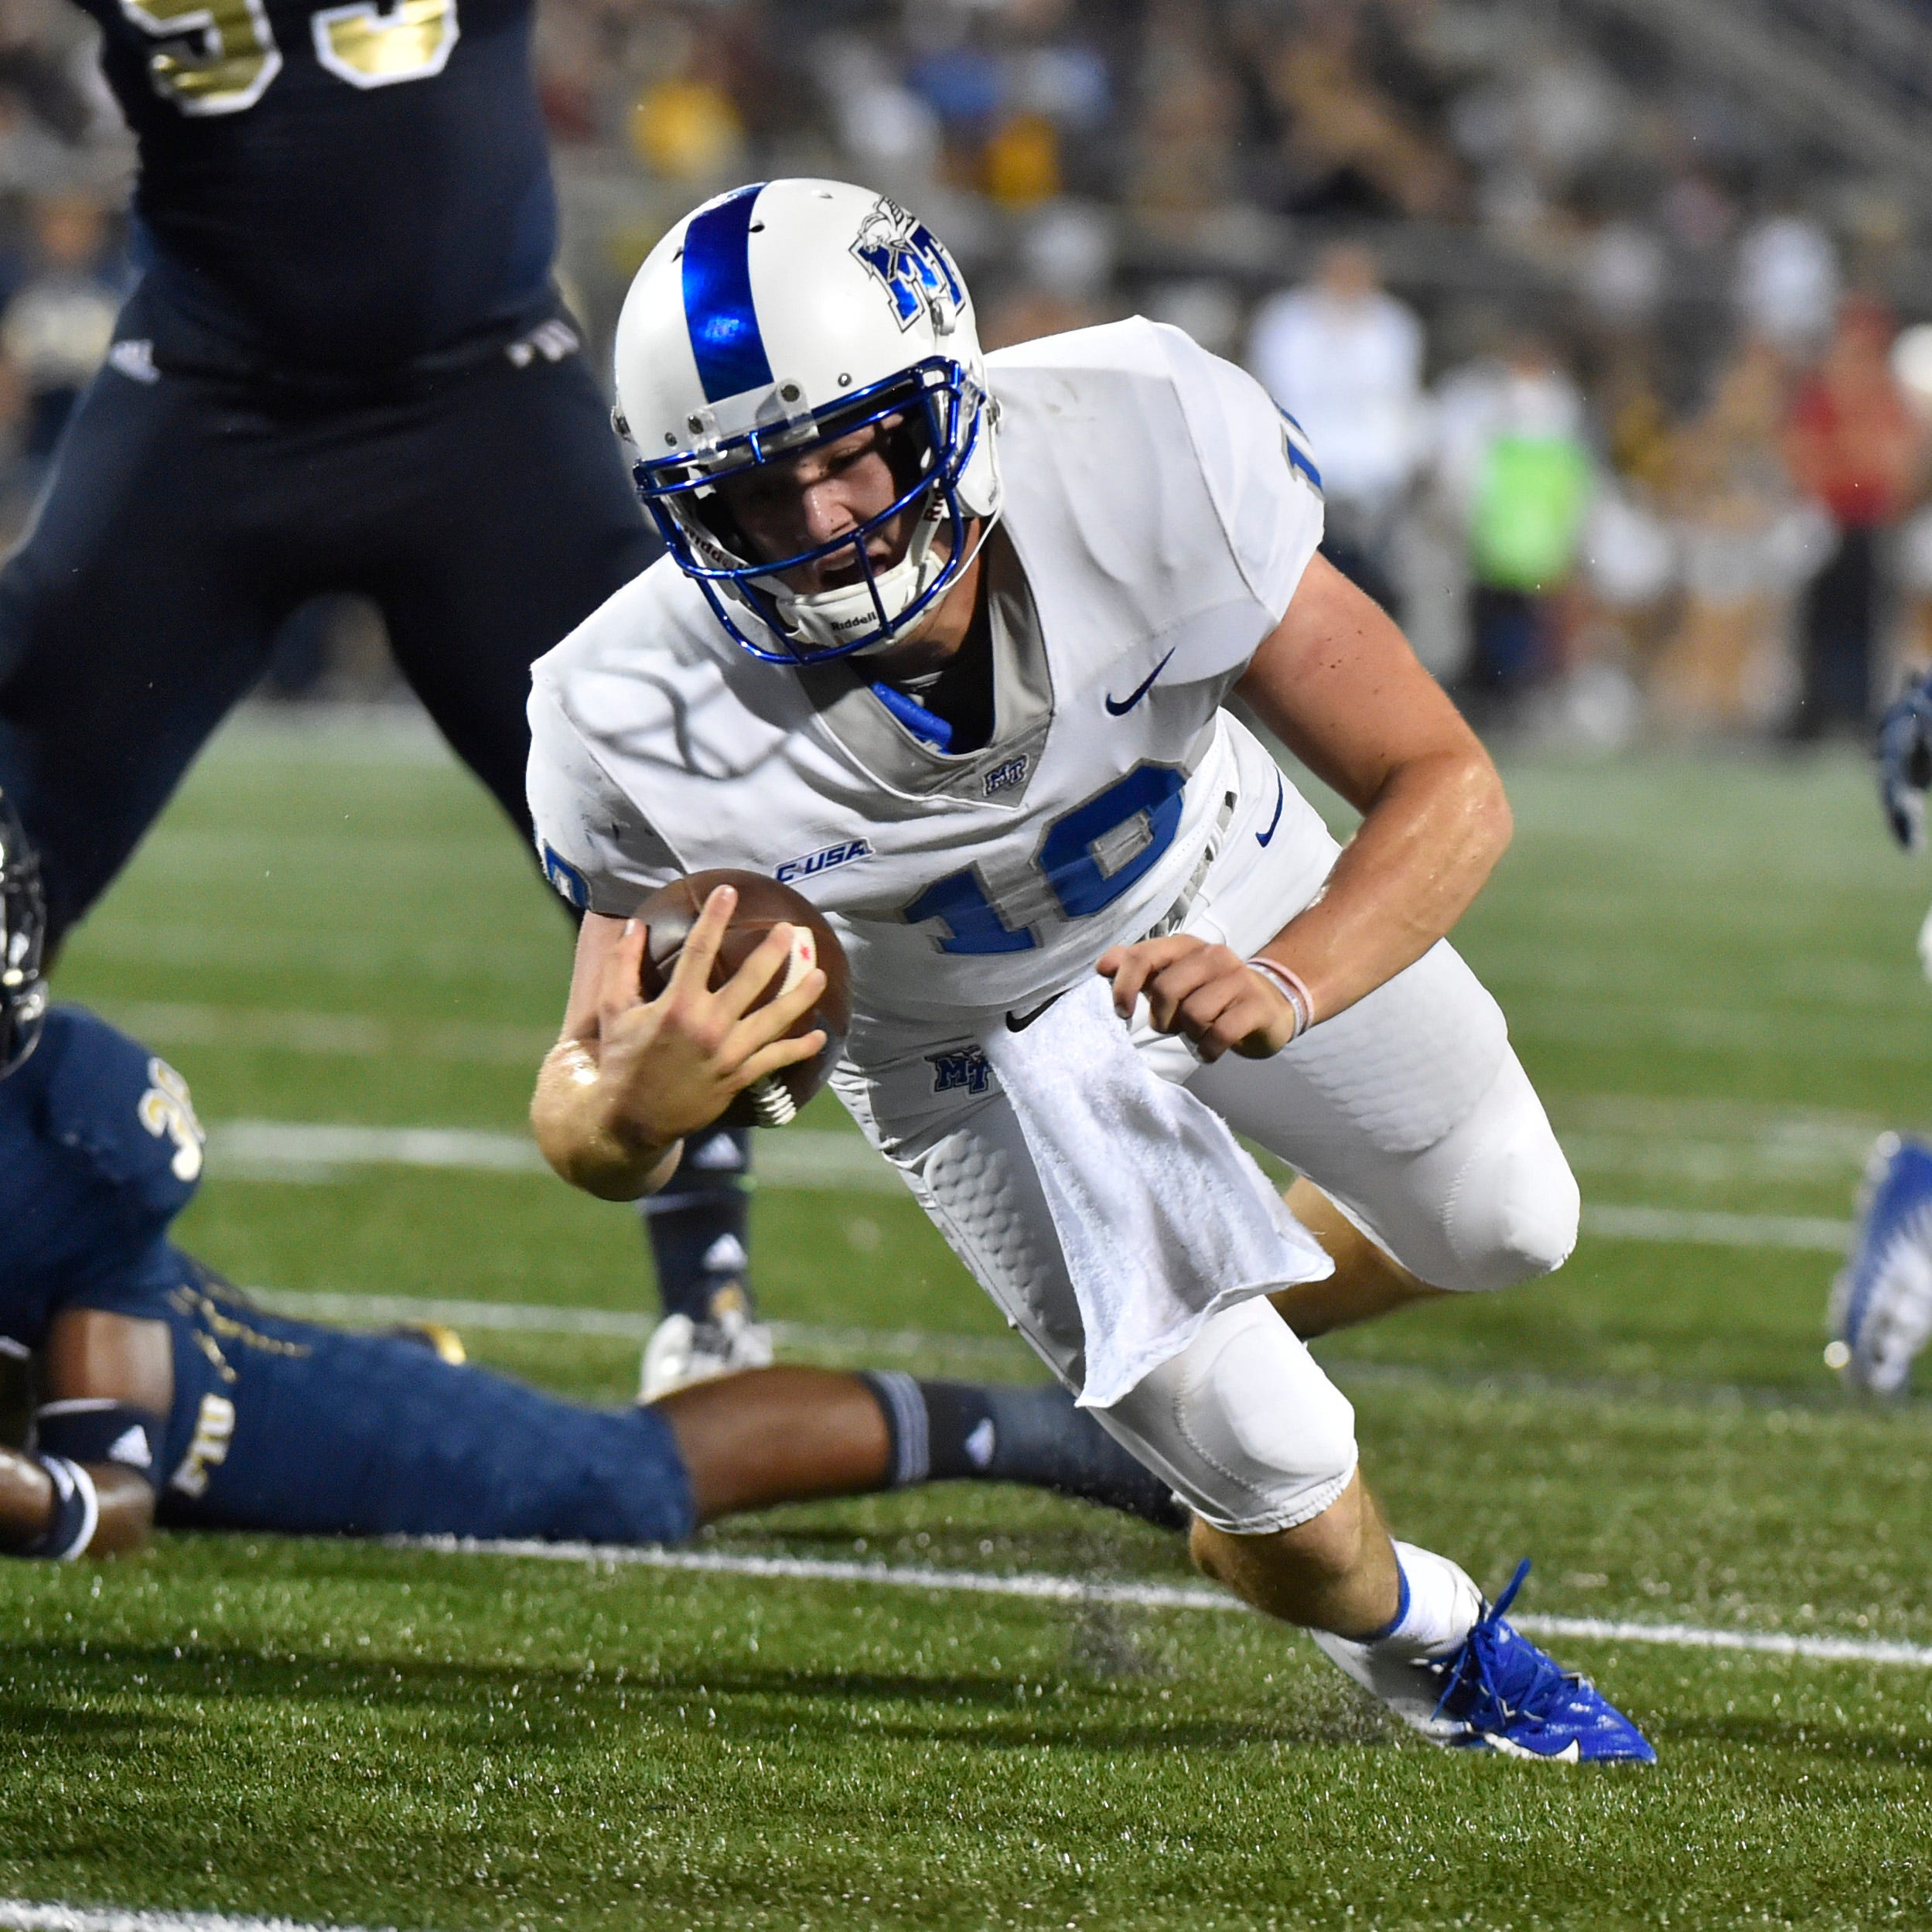 Asher O'Hara steps in for MTSU football after Brent Stockstill gets hurt